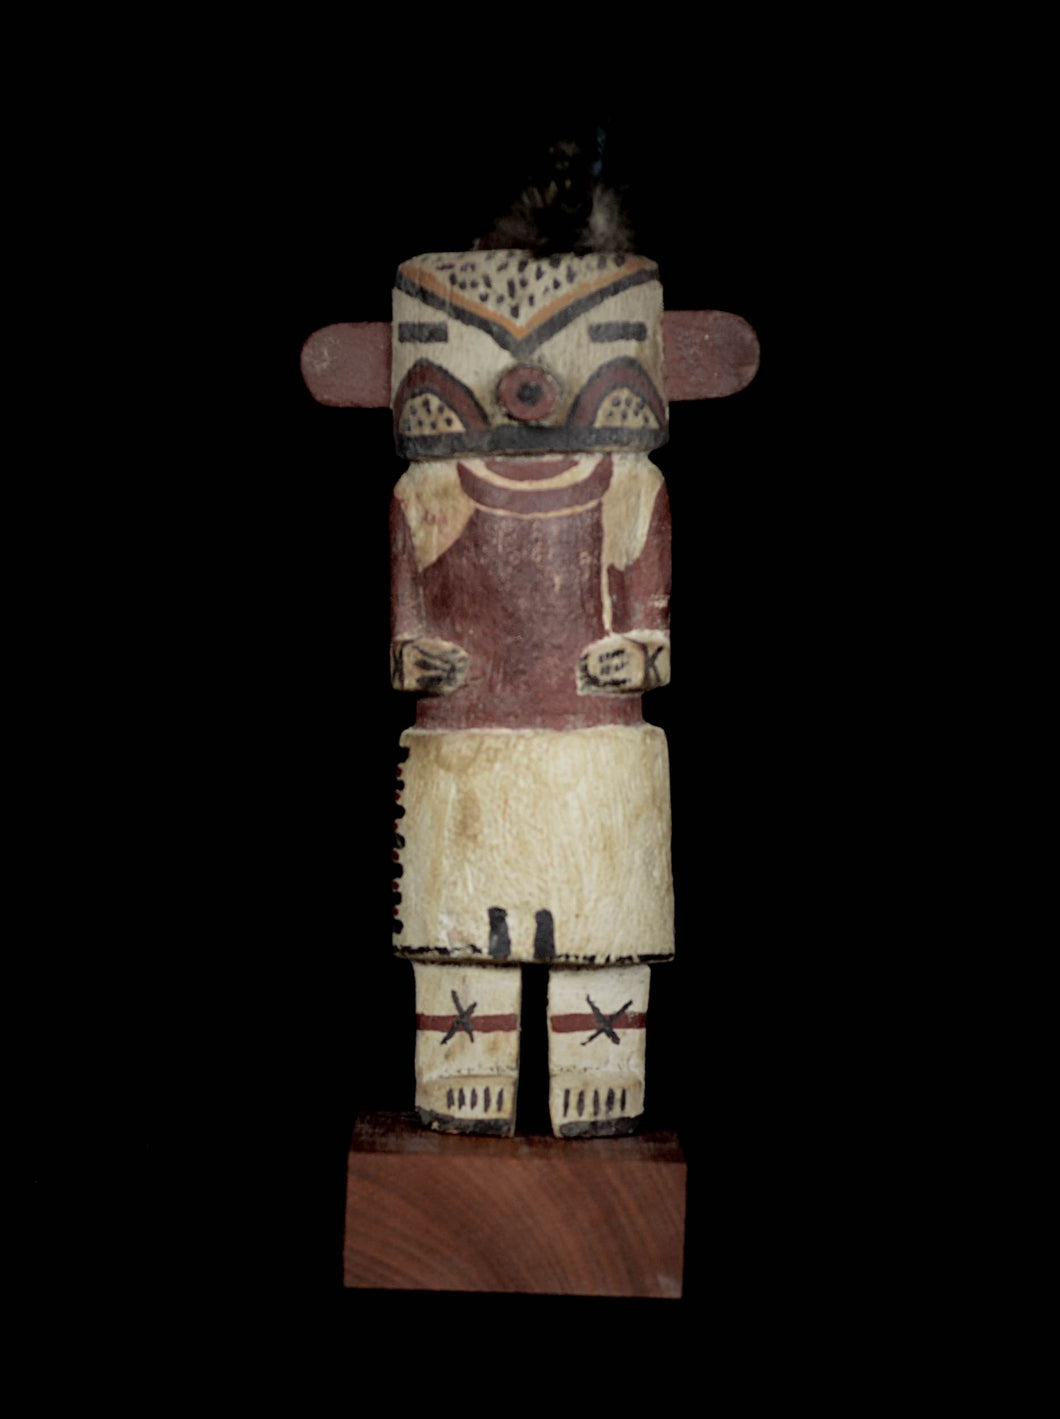 KACHINA Doll in the style of the HOPI Indians - Amerindians - USA